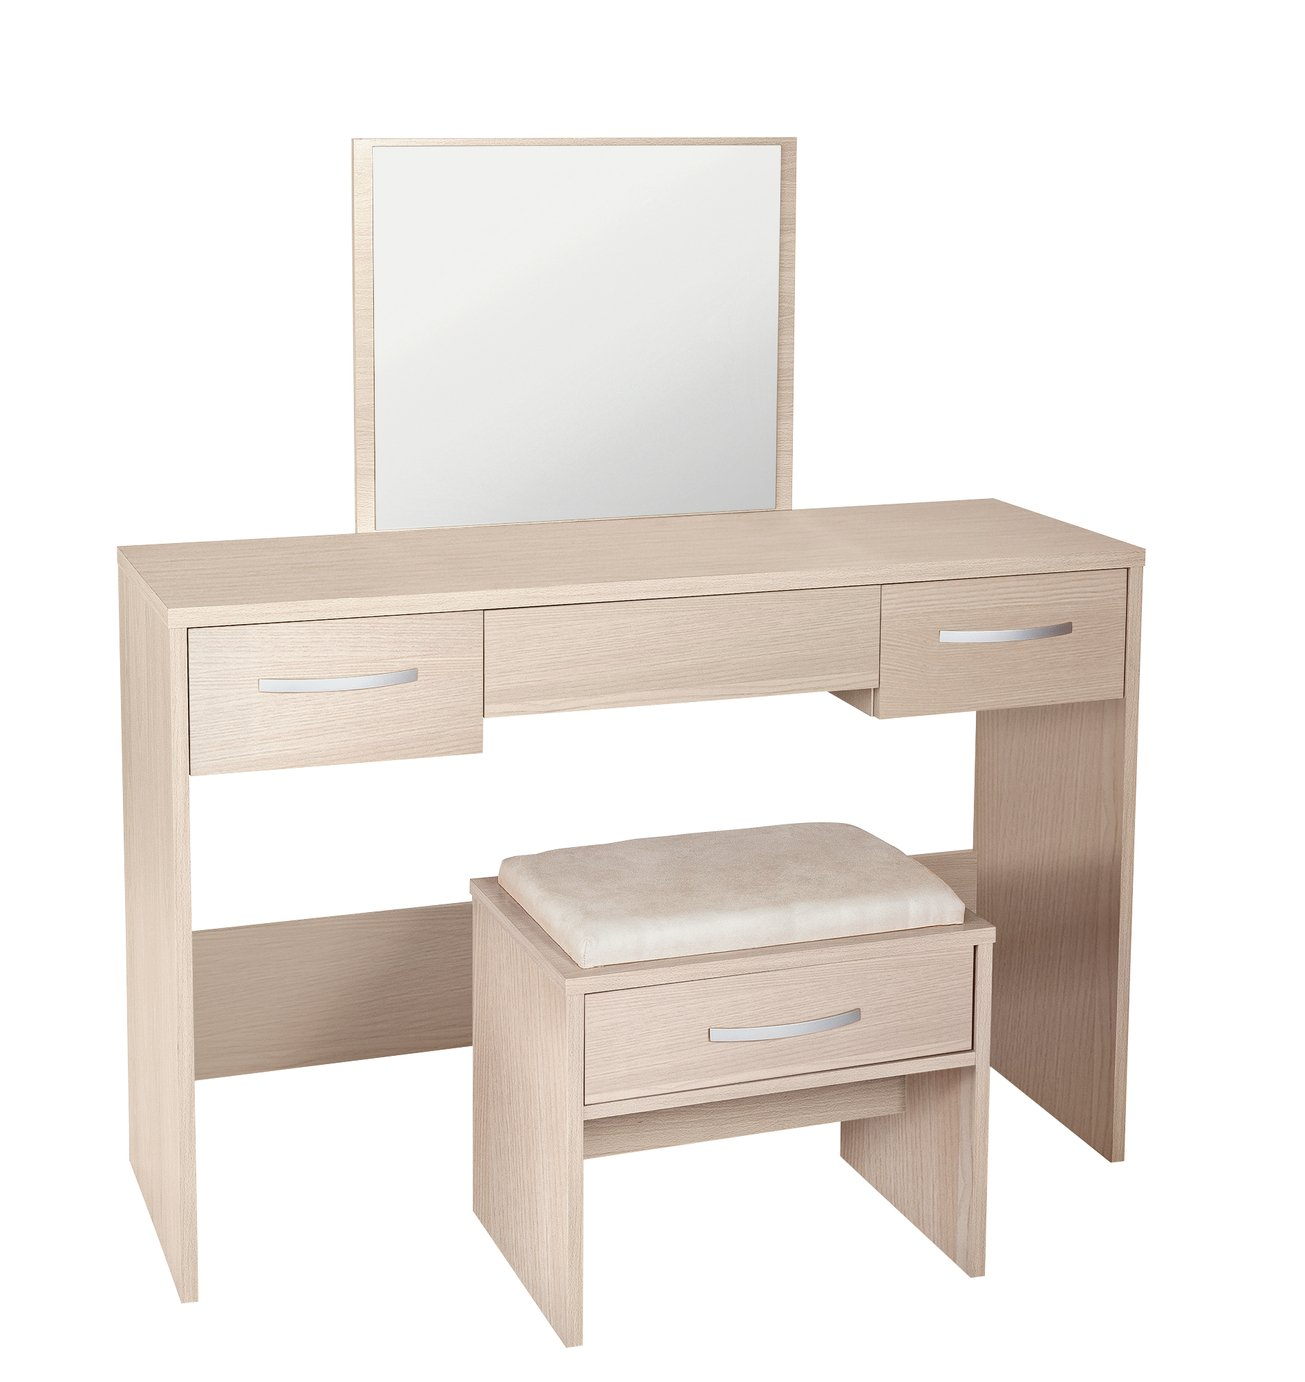 Image of Collection Hallingford Dressing Table - Light Oak Effect